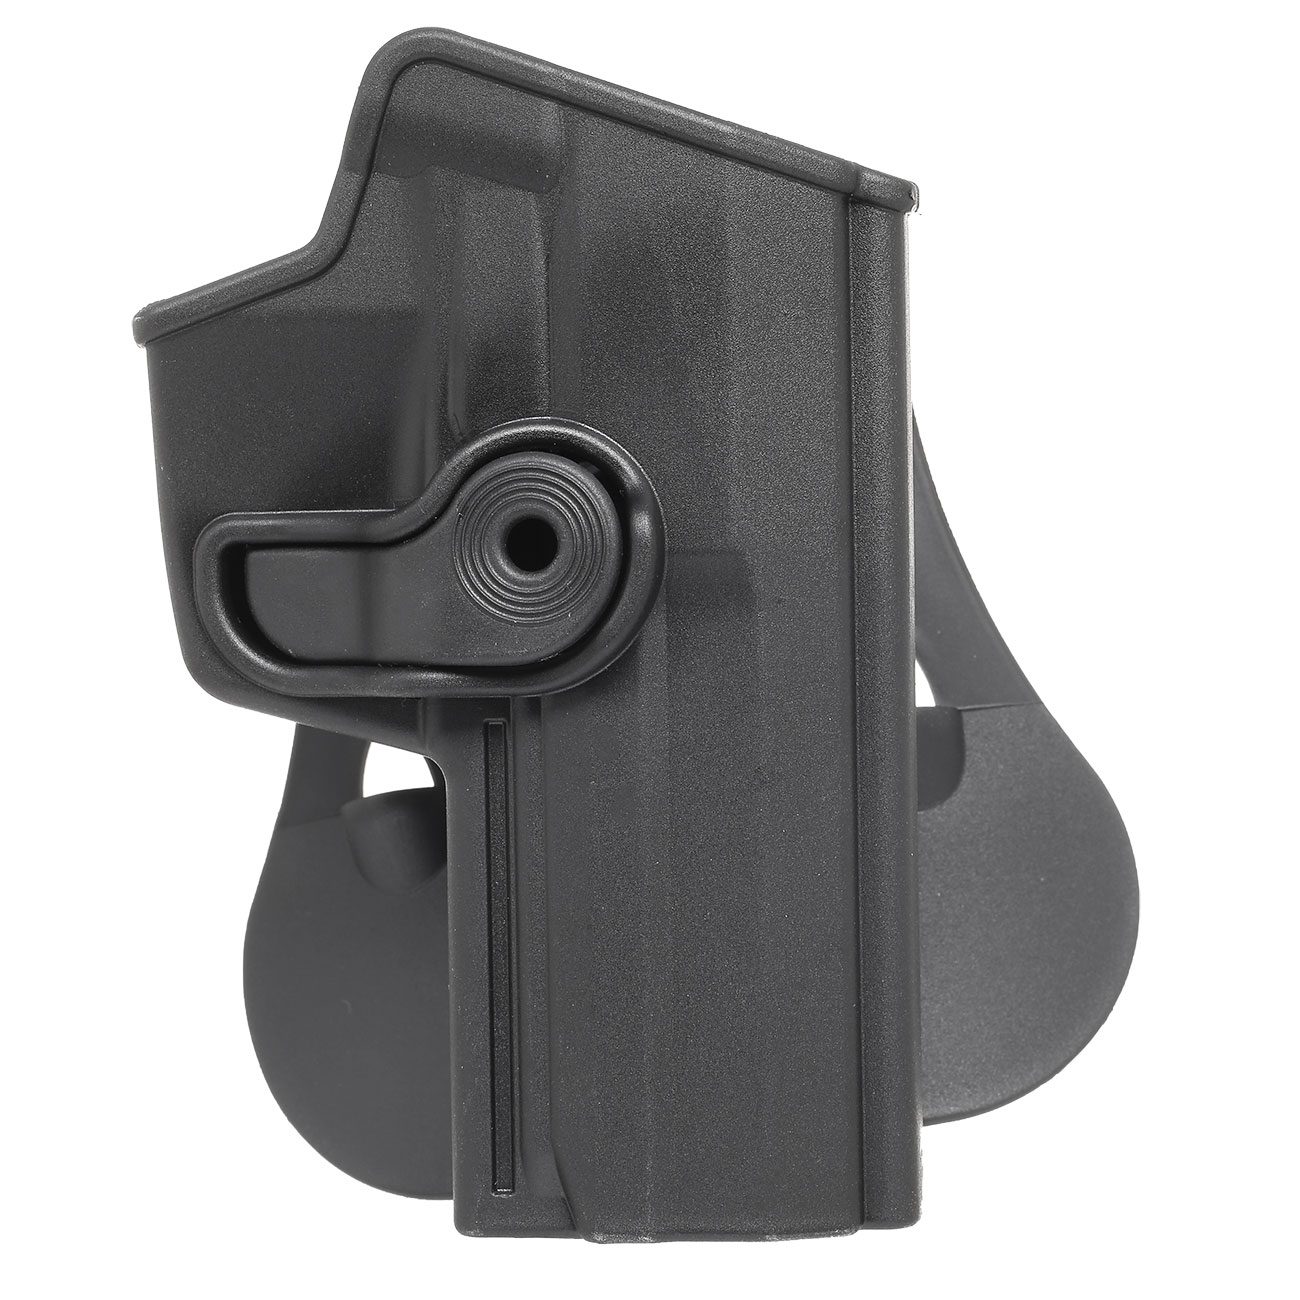 IMI Defense Level 2 Holster Kunststoff Paddle für H&K USP / P8 9mm schwarz 0